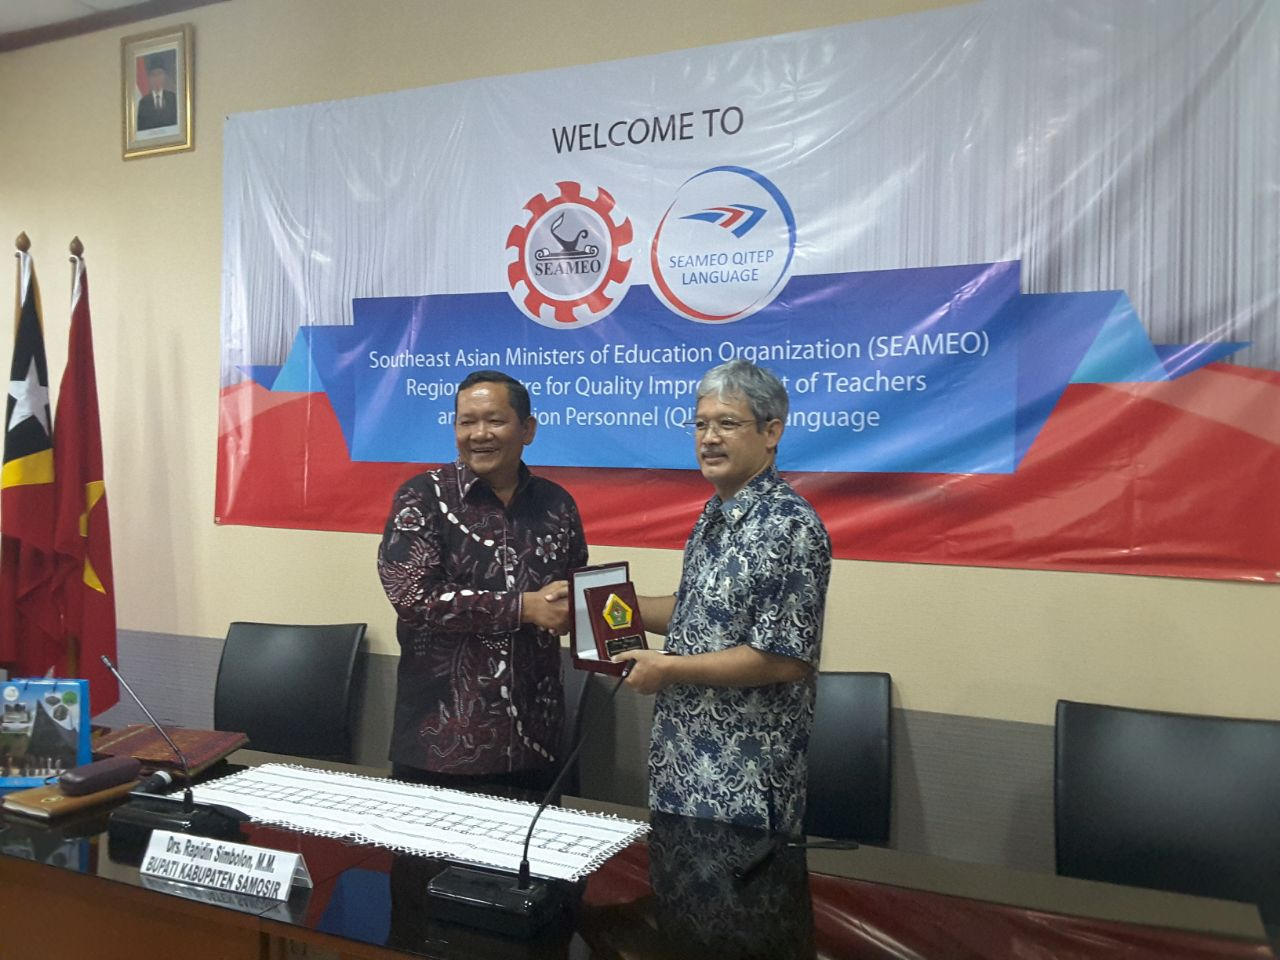 Collaboration Agreement between SEAMEO QITEP in Science and the Samosir Regency Government Office to Improve Competencies of Teachers and Education Personnel